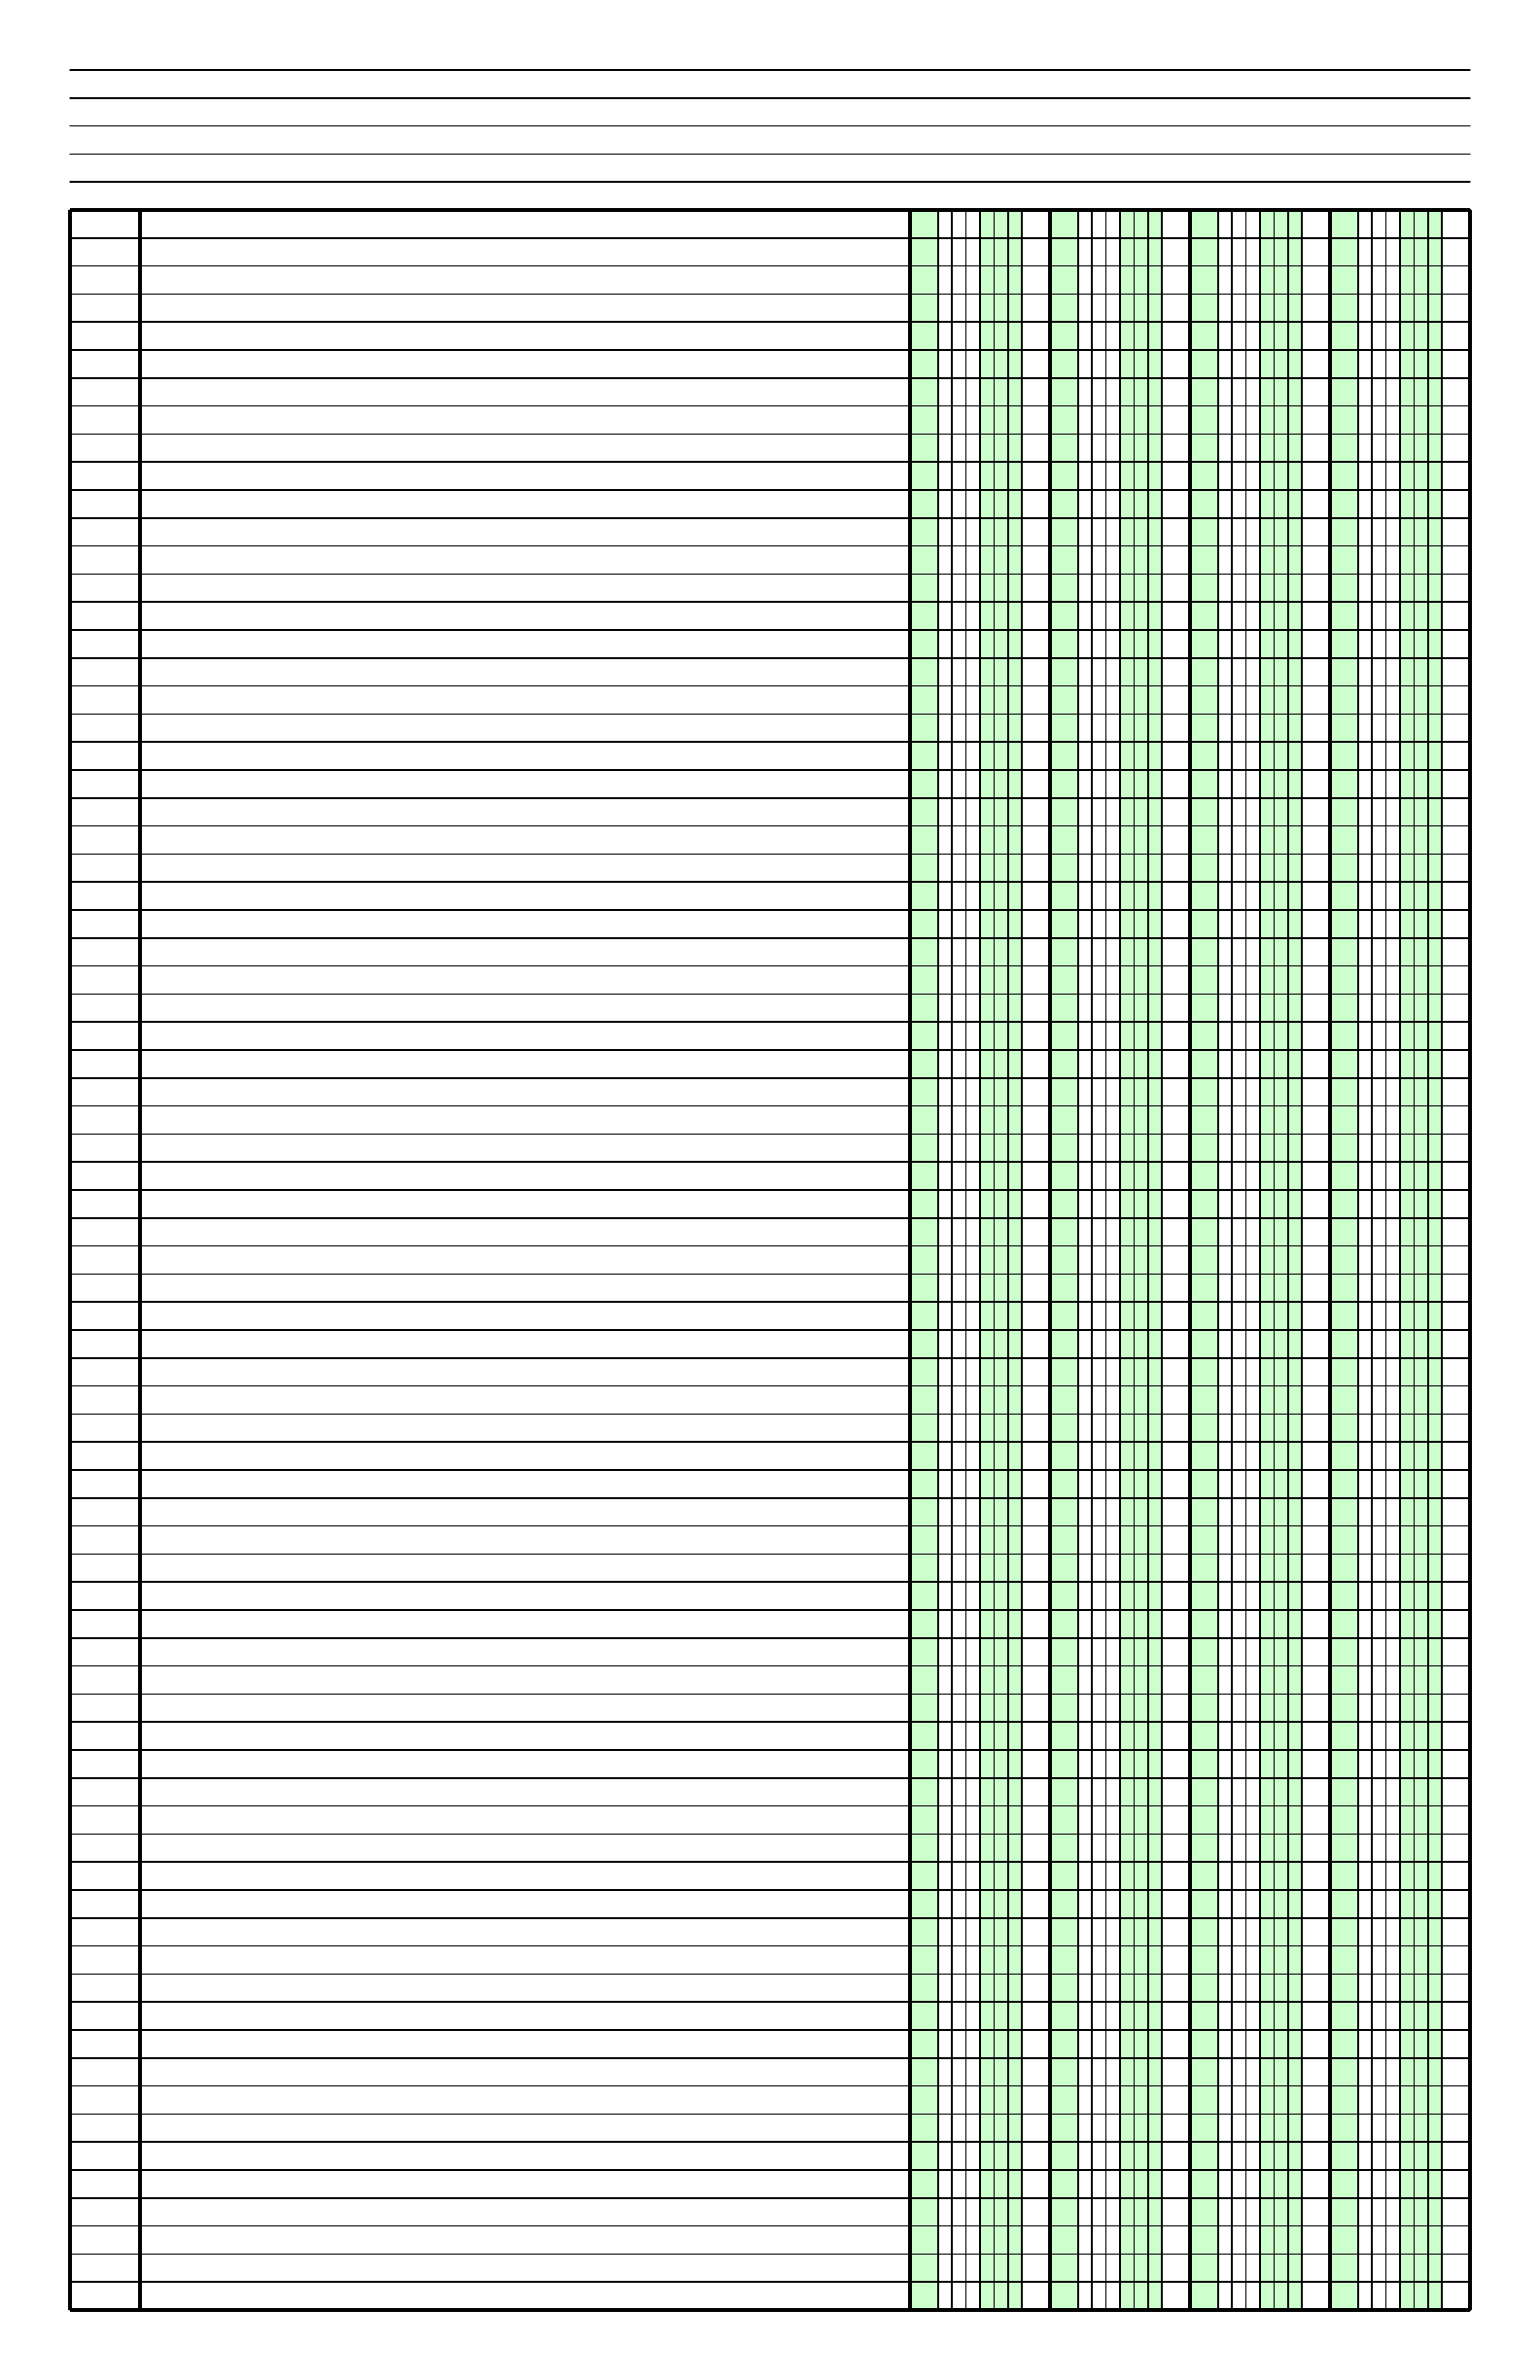 Columnar Paper With Four Columns On Ledger Sized Paper In